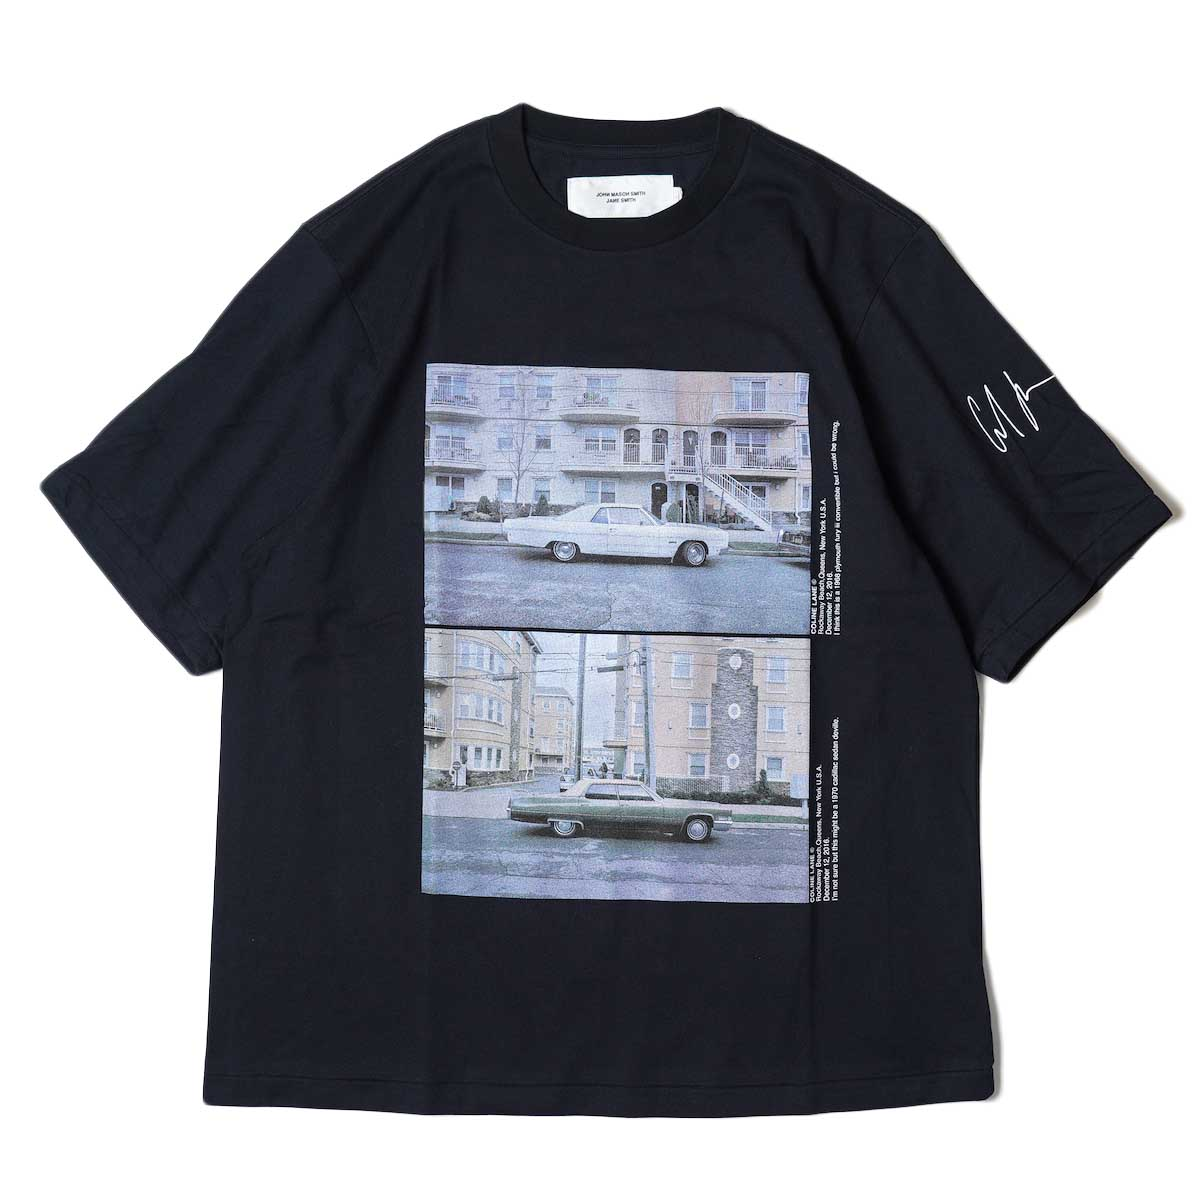 JANE SMITH / CADILLAC PLYMOUTH S/S T-Shirt (Black) 正面